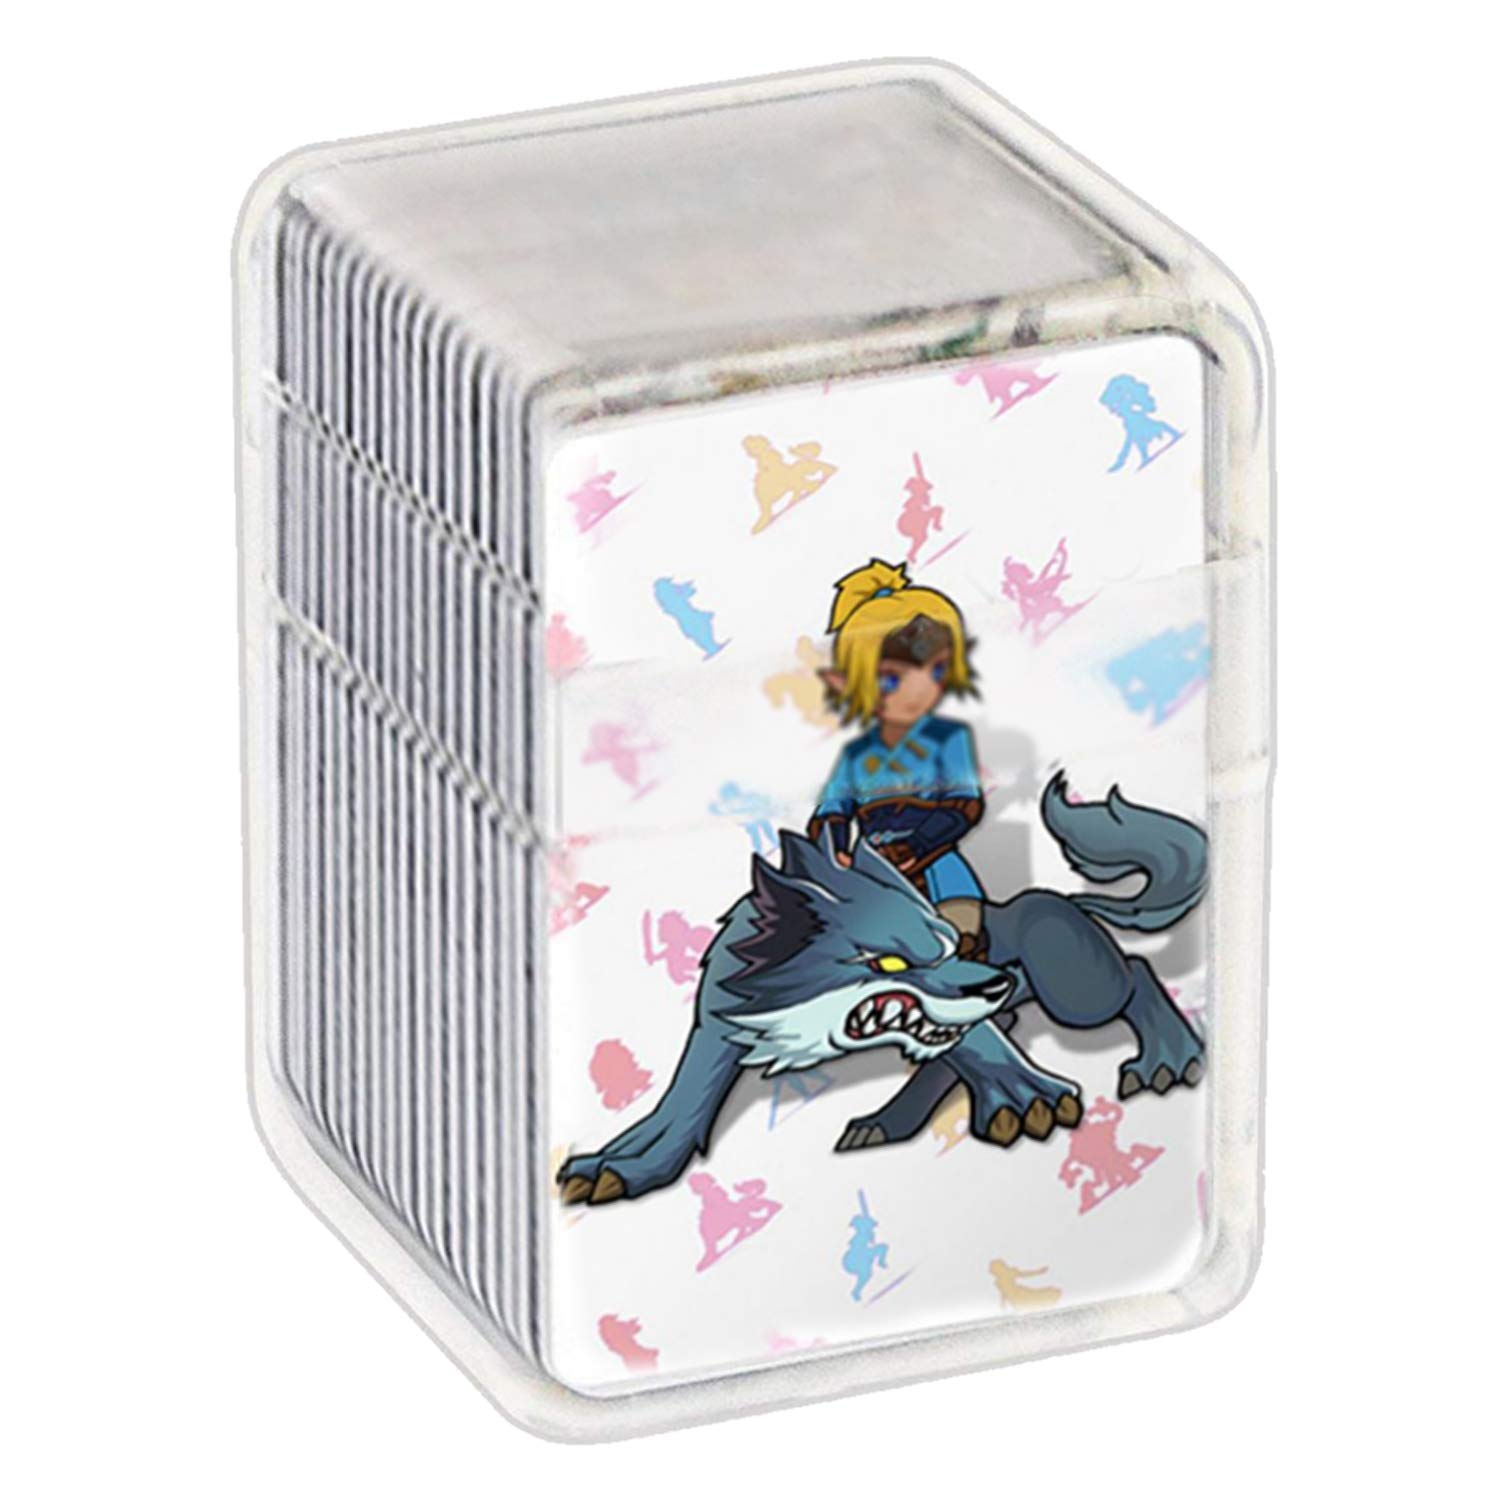 GURLLEU Botw NFC Tag Game Cards for the Legend of Zelda Breath of the Wild Compatible with Switch/Wii U - 23pcs Mini Cards with Crystal Case by Gurlleu